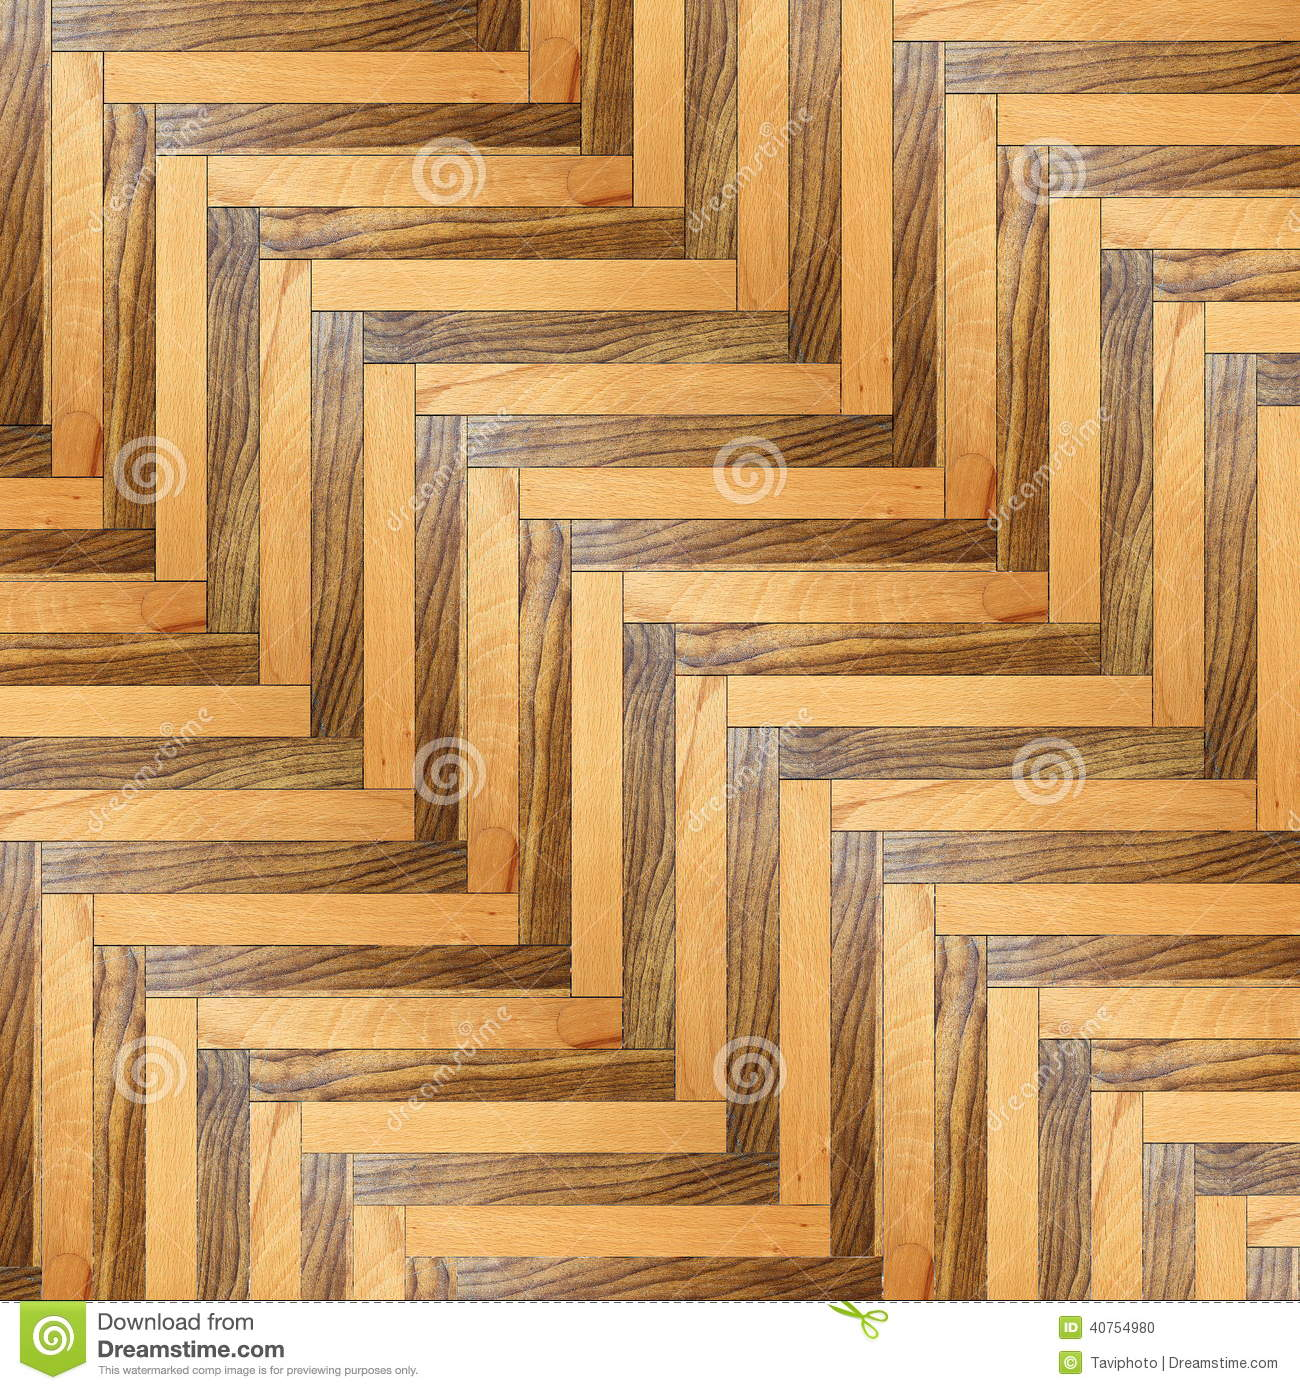 striped model of wood floor stock photo image 40754980. Black Bedroom Furniture Sets. Home Design Ideas